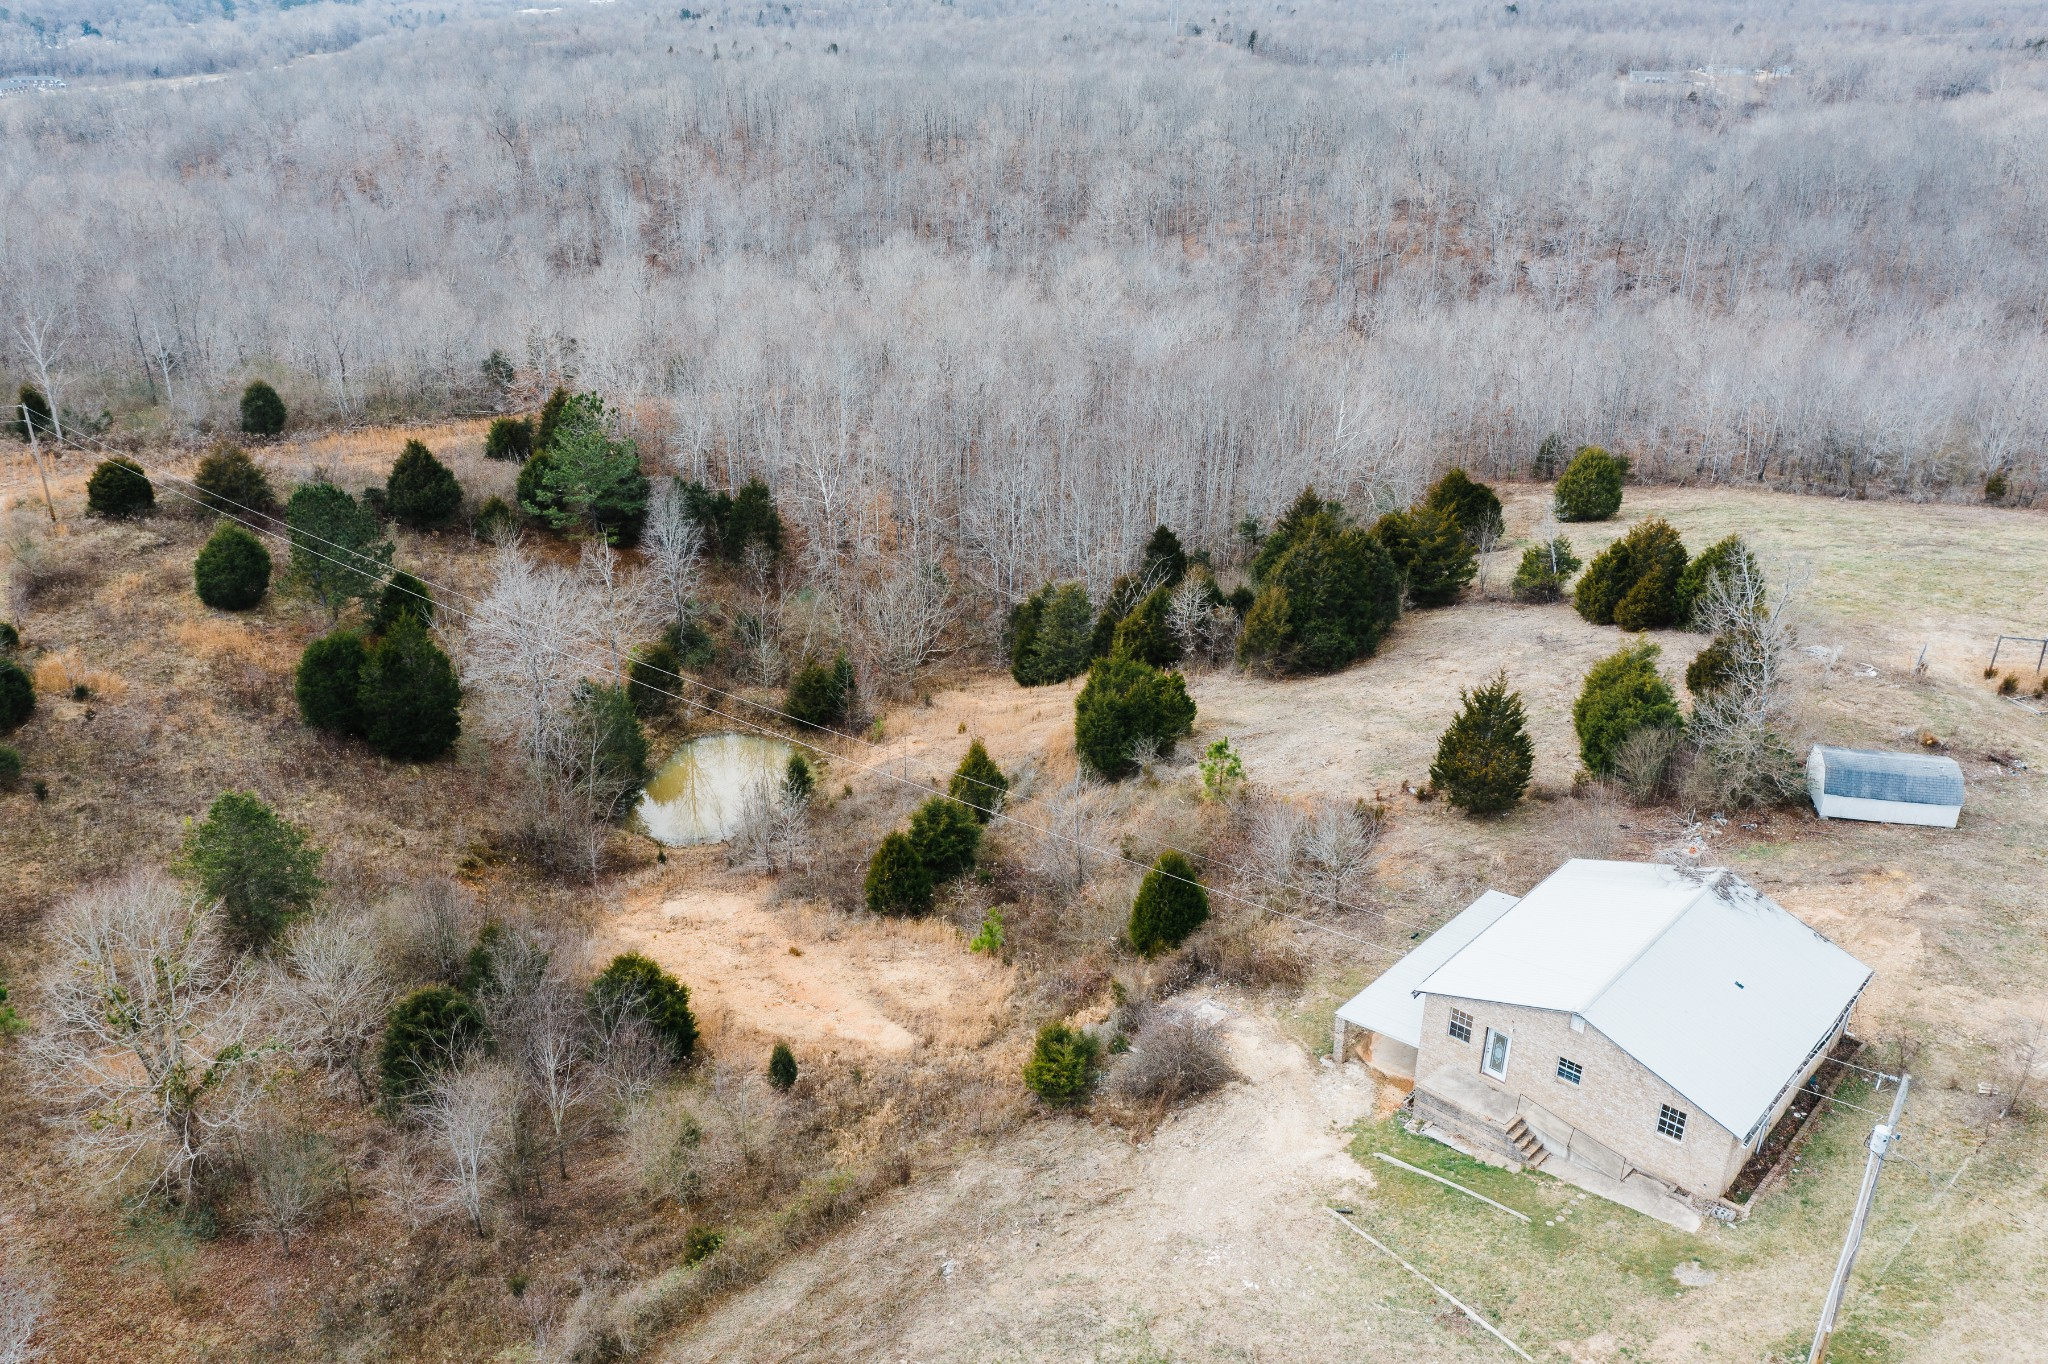 Lovely 30 acres outside Waverly city limits - Home is ready to make your own - Perfect for horses, fences & outbuildings on property - Land is full of trees and has a pond - Home has city water and  a well on property & a septic tank